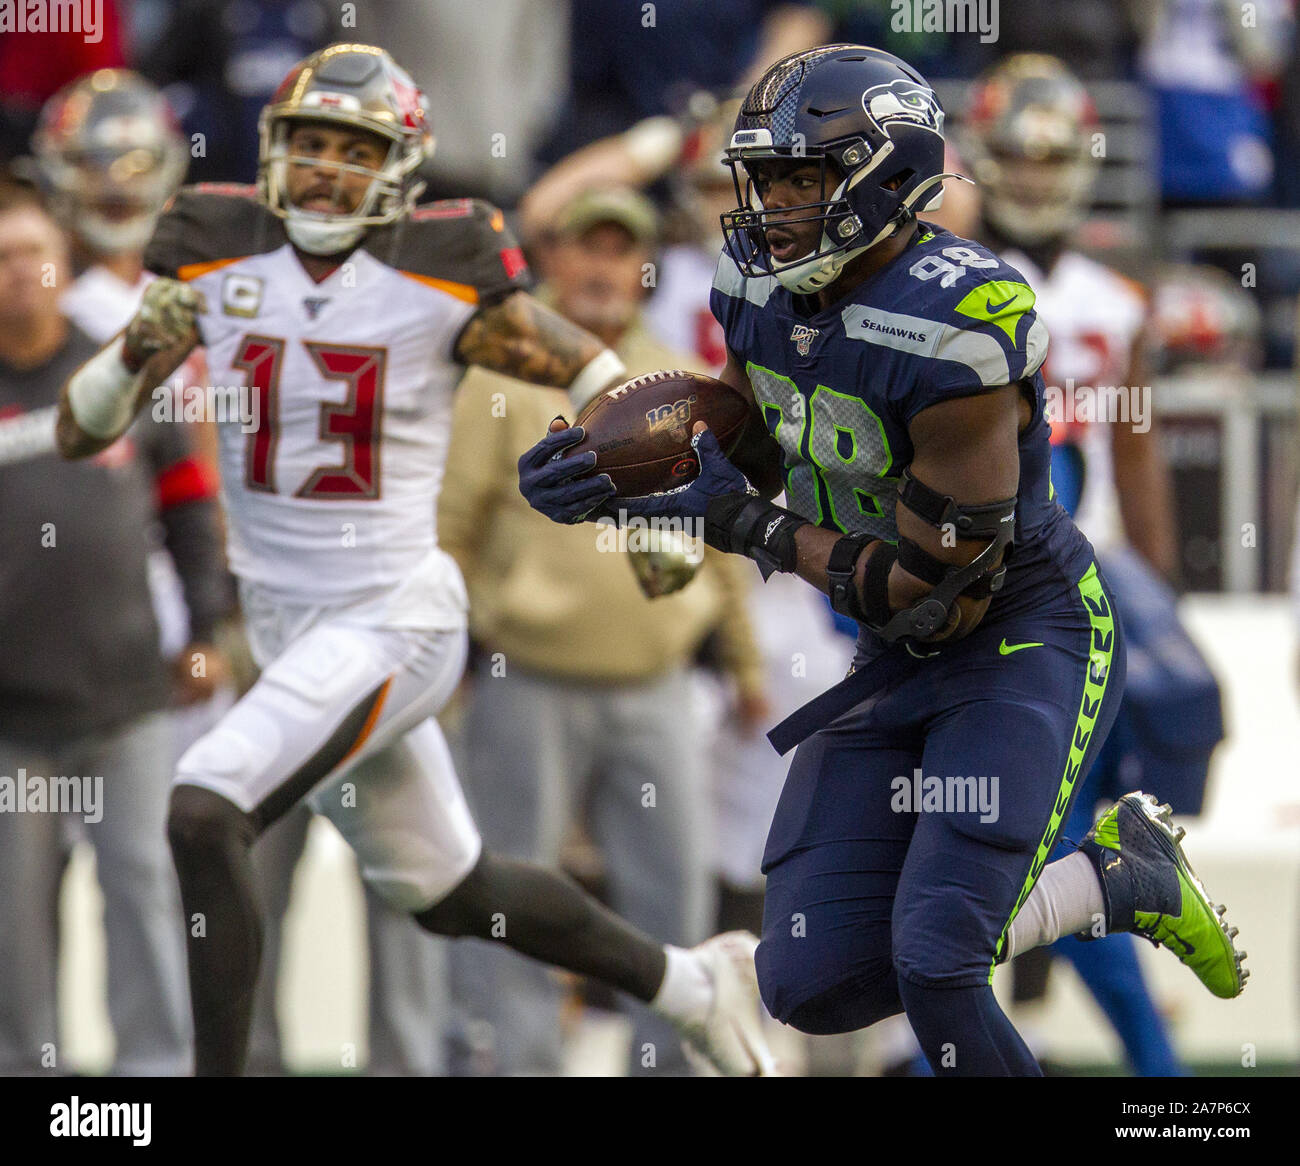 Seattle, United States. 03rd Nov, 2019. Seattle Seahawks defensive end Rasheem Green (98) returned a Tampa Bay Buccaneers quarterback Jameis Winston (3) fumble during the fourth quarter to the Tampa Bay 15-yard line at CenturyLink Field on Sunday, November 3, 2019 in Seattle, Washington. The Seahawks beat the Buccaneers 40-34 in overtime. Jim Bryant Photo/UPI Credit: UPI/Alamy Live News Stock Photo